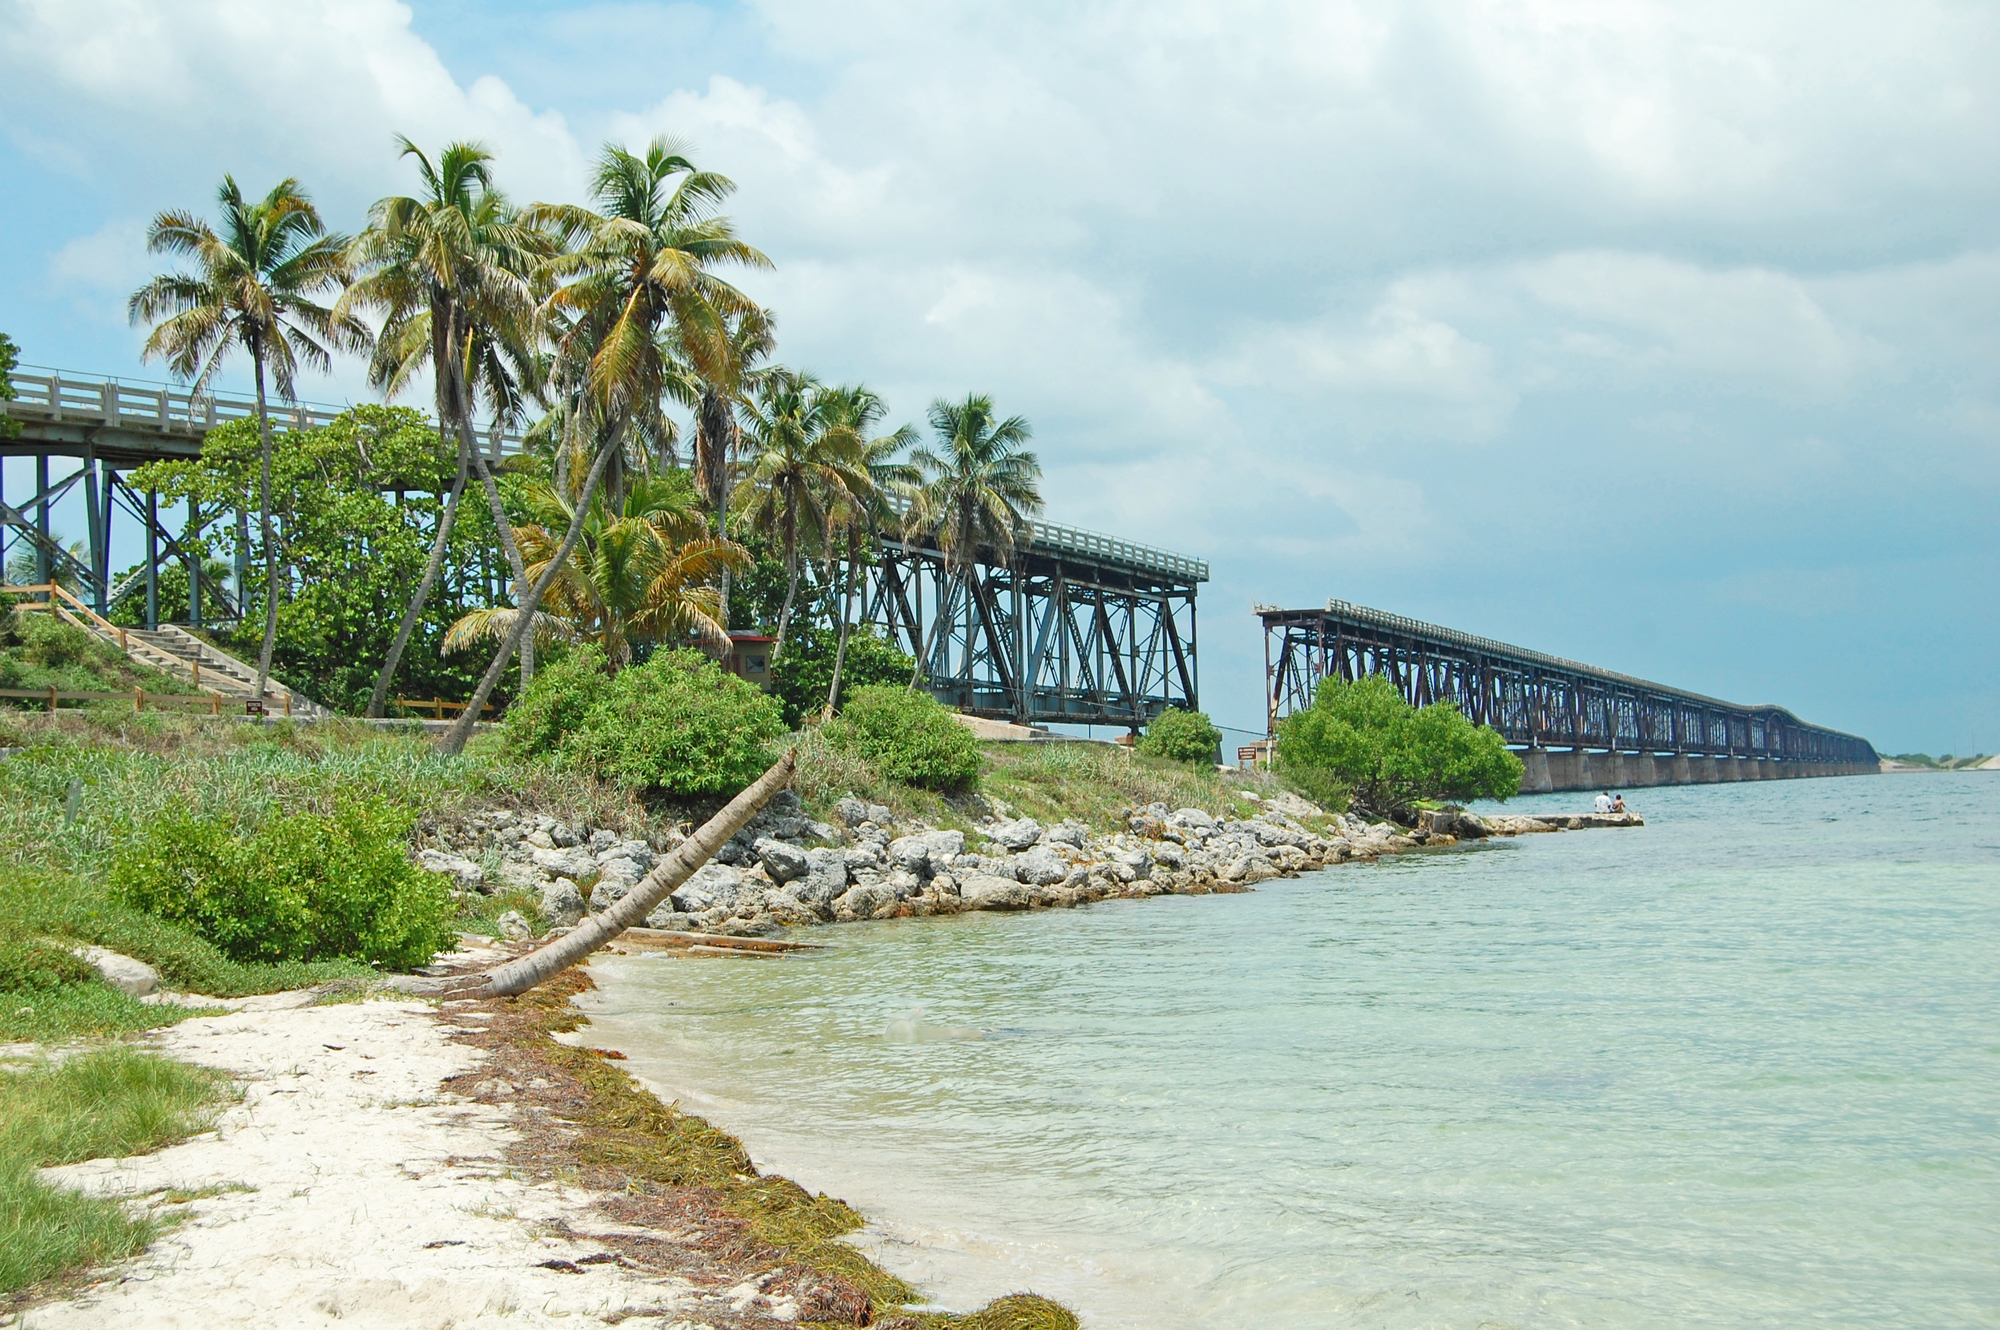 broken bridge surrounded by scrub palm trees and bordered by sand and ocean